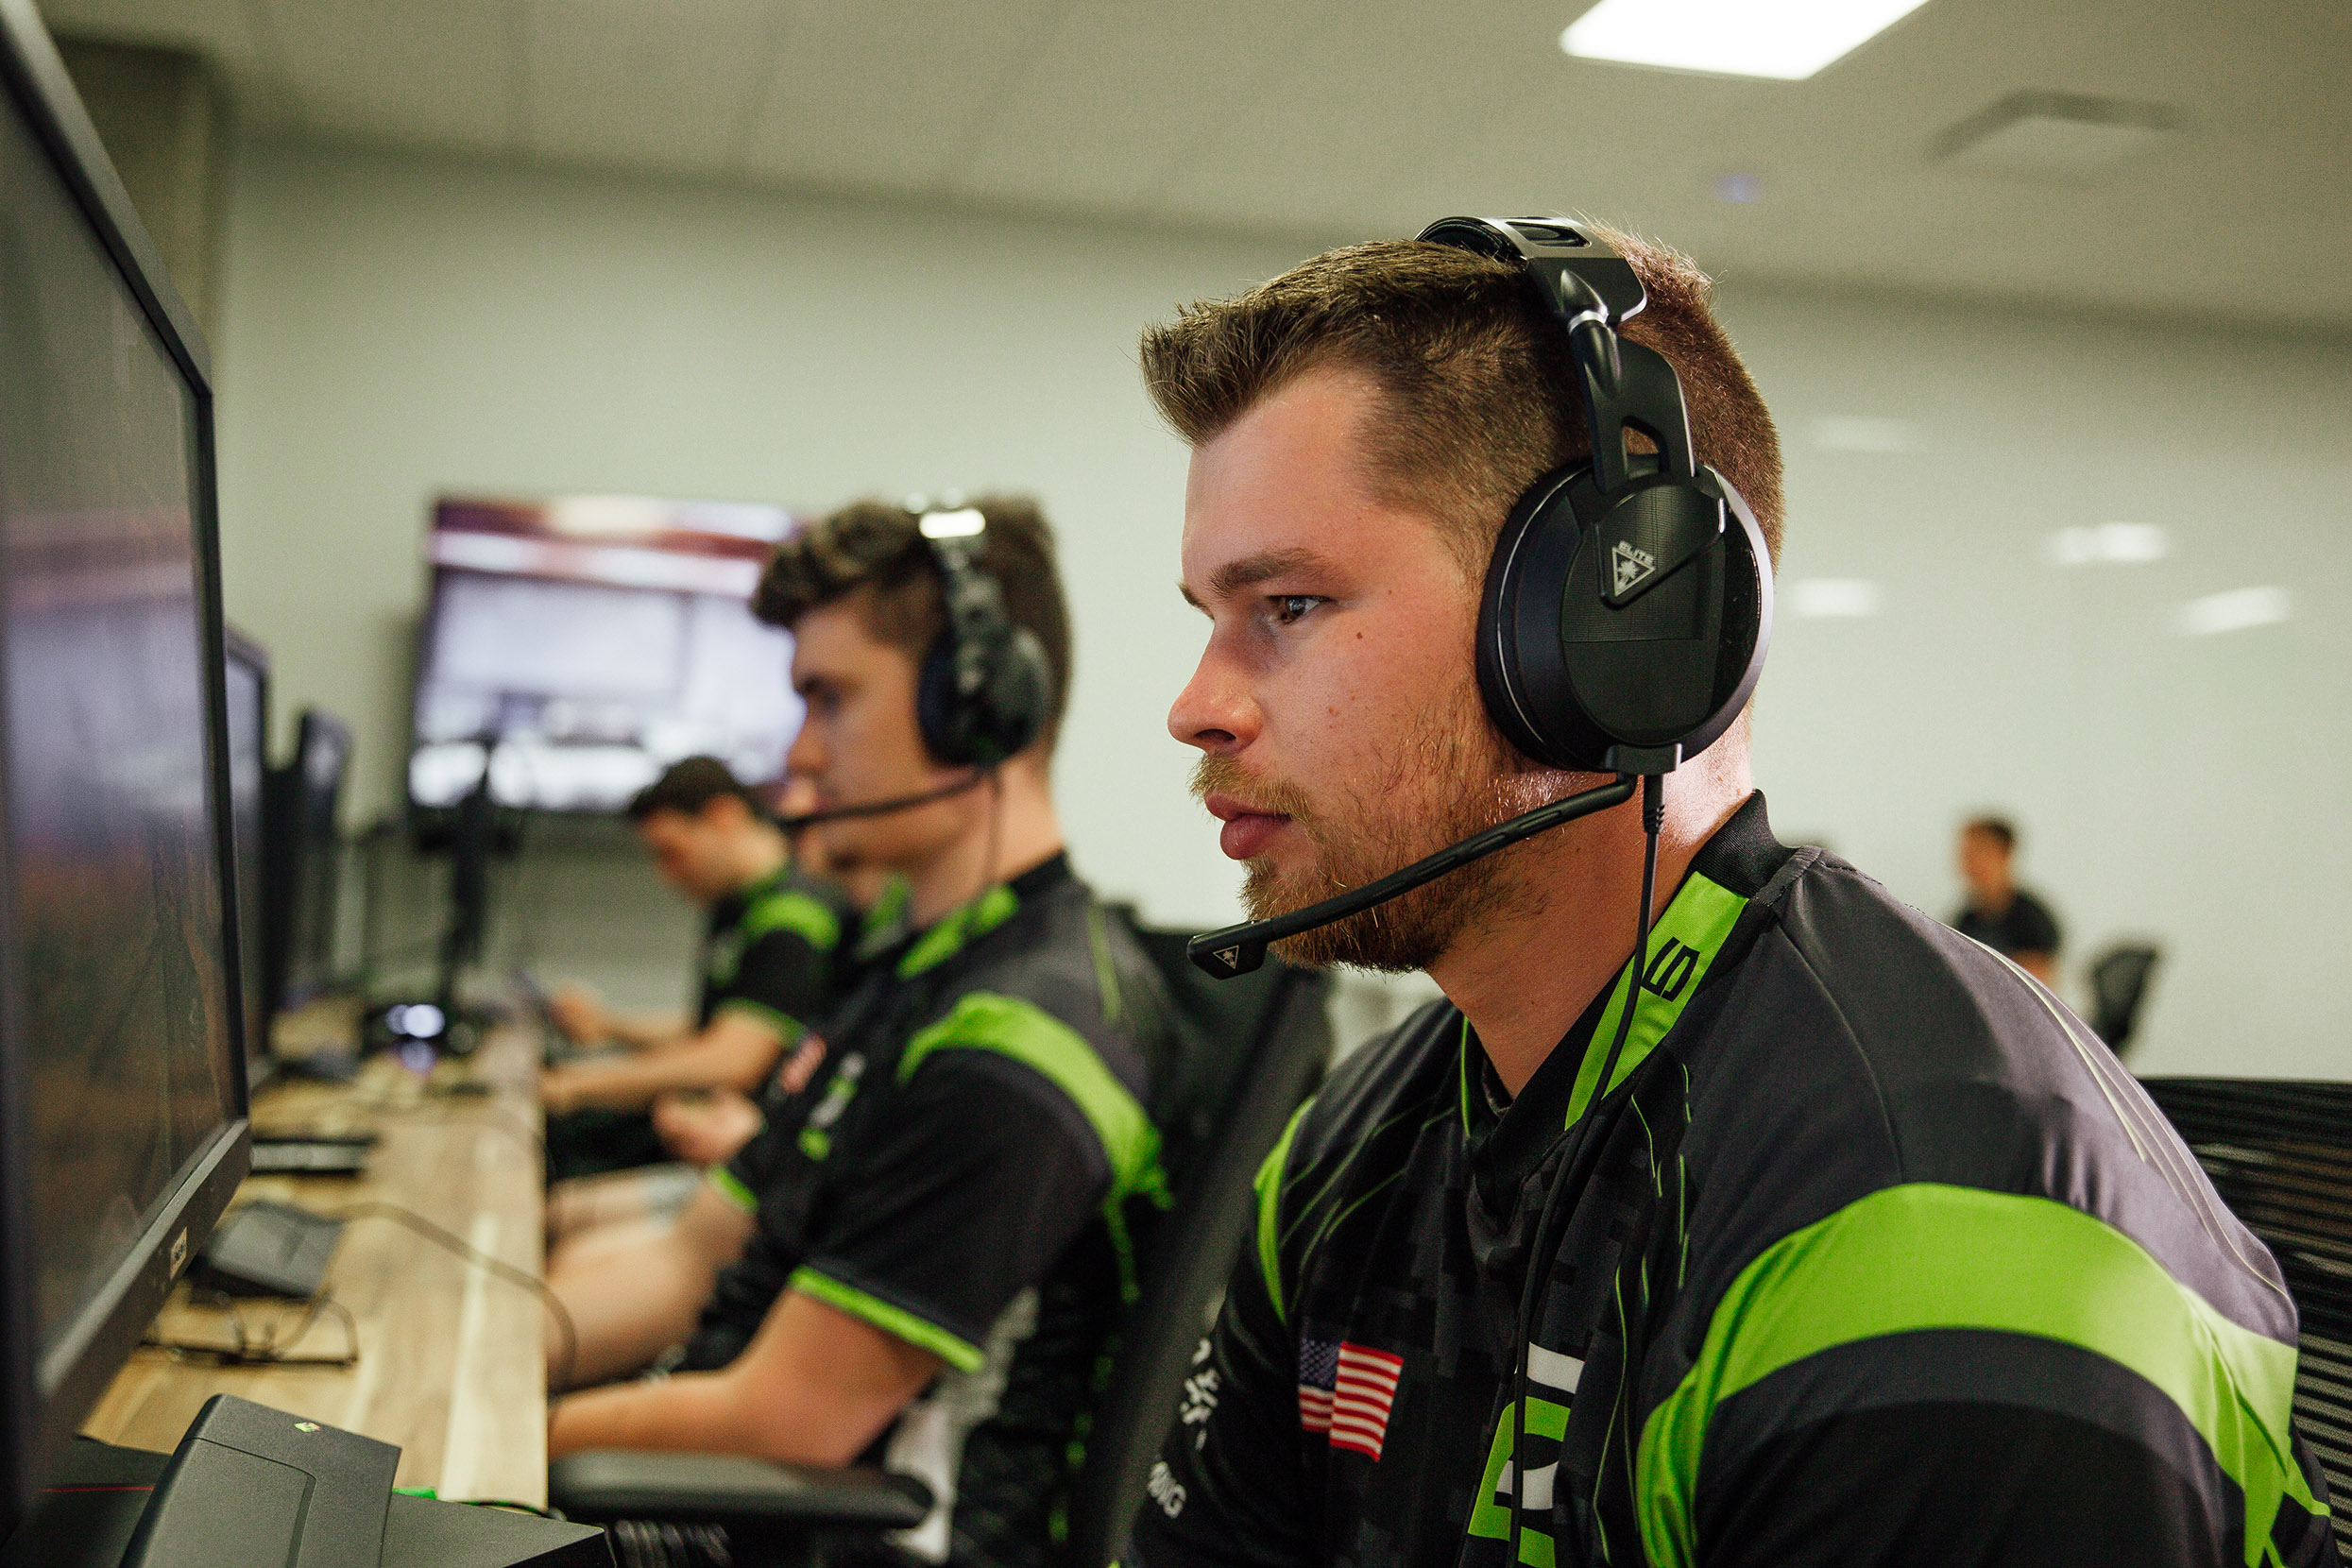 Turtle Beach's new Elite Pro 2 gaming headset comes with a